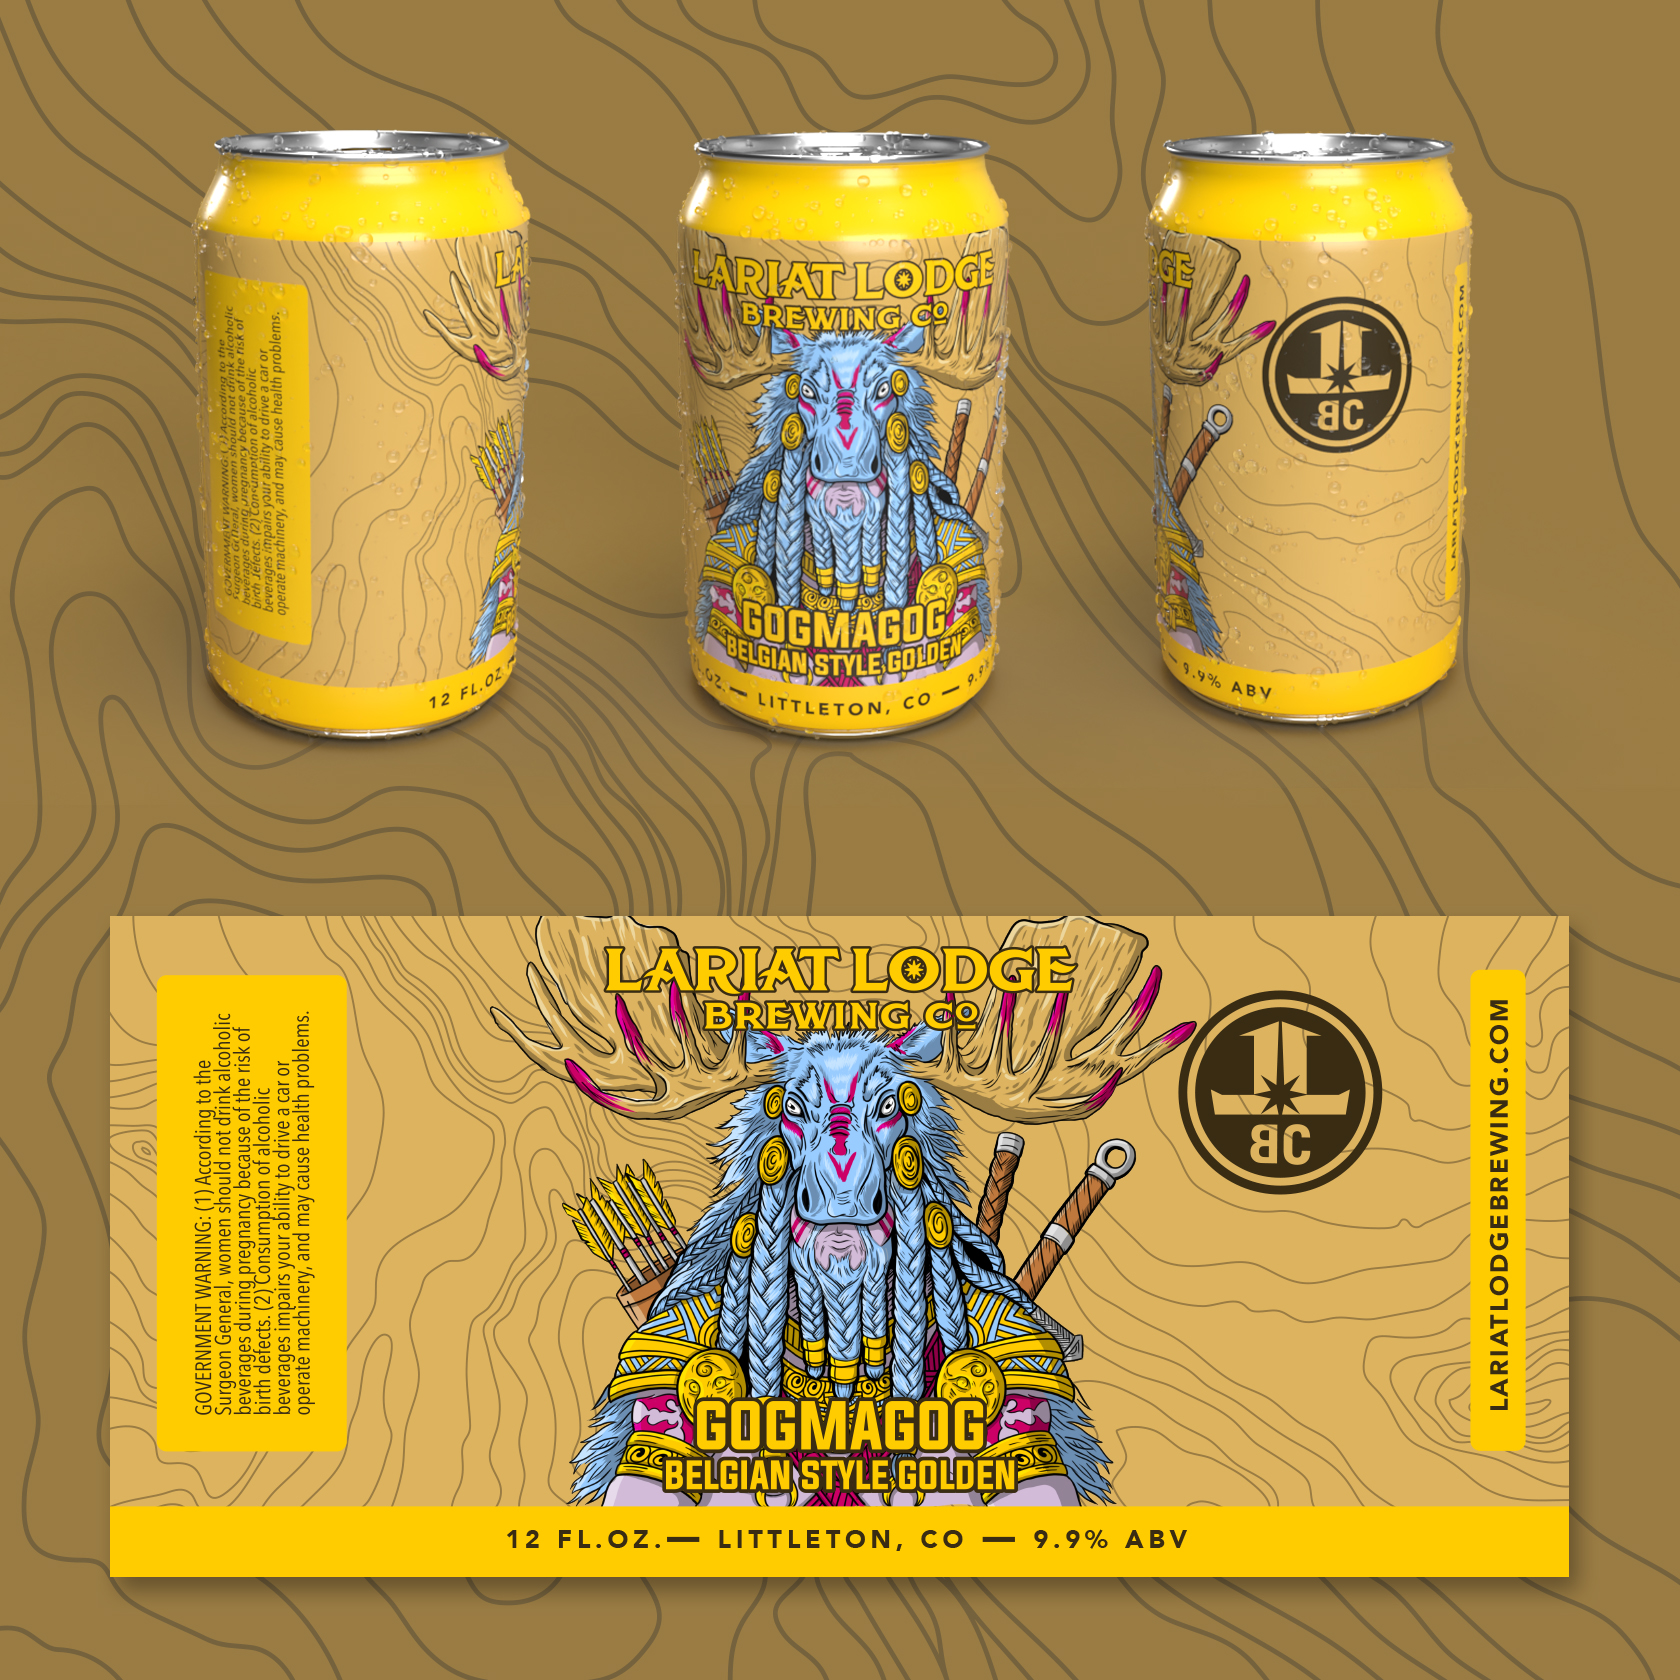 belgian golden beer label design, beer label design, colorado beer label, colorado beer, colorado microbeer, amber beer label, beer label design, beer can label design, hi-five design